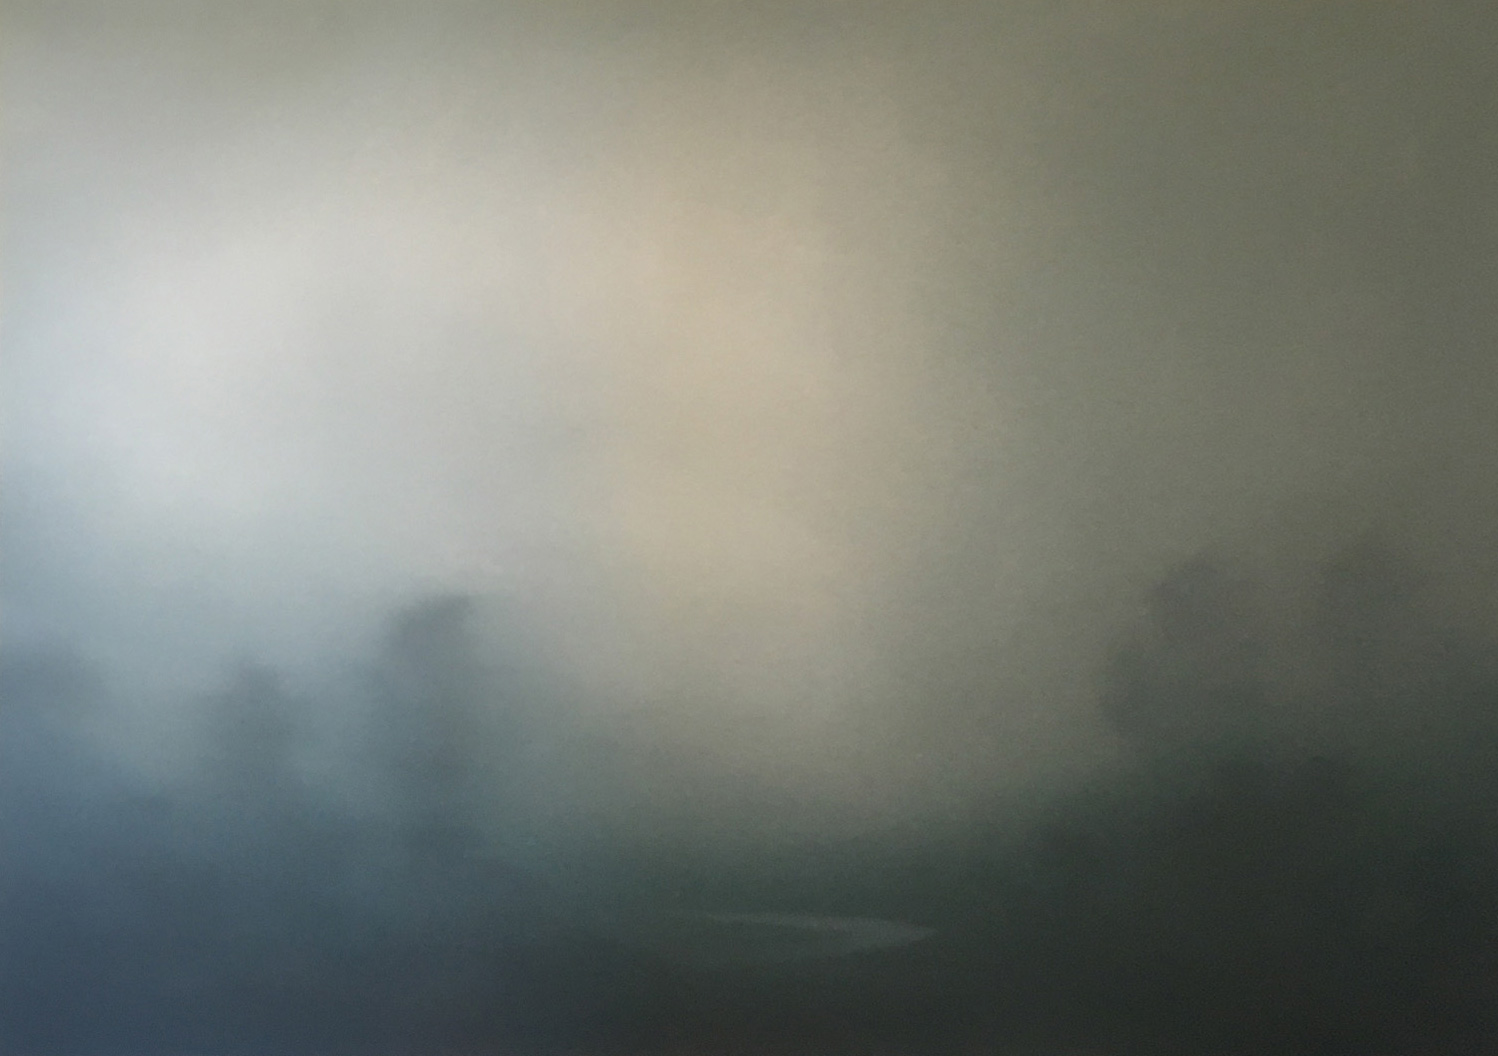 T#135-2019, 100x140cm, oil on canvas